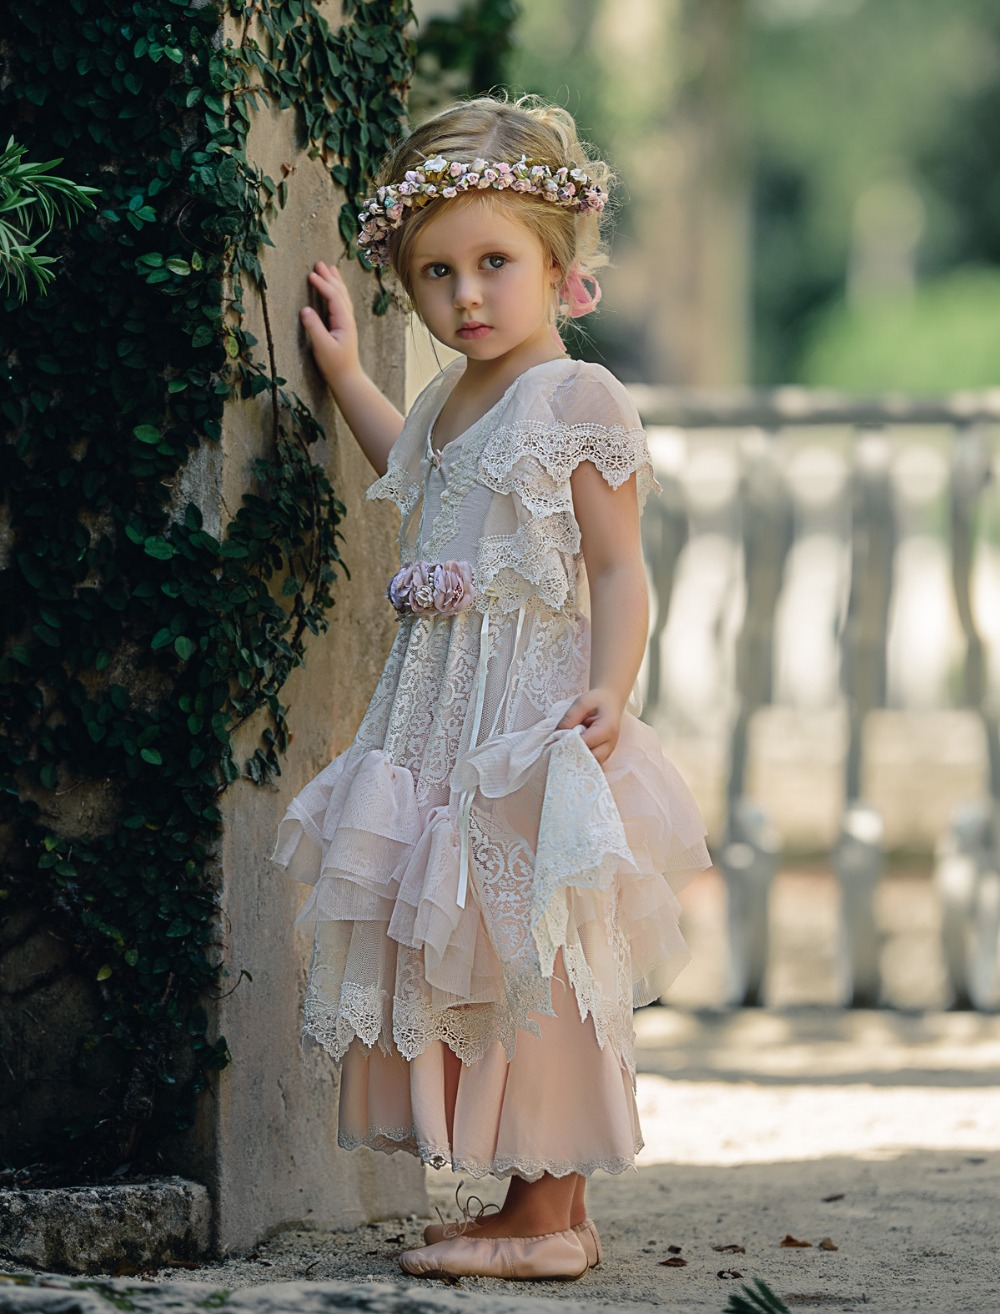 Cute Satin Tulle A-Line Flower Girl Dress V-Neck Short Sleeves Mid-Calf Tiered Girl Pageant Dress For Christmas Birthday Party cute short sleeve organza design beaded a line dress for girl